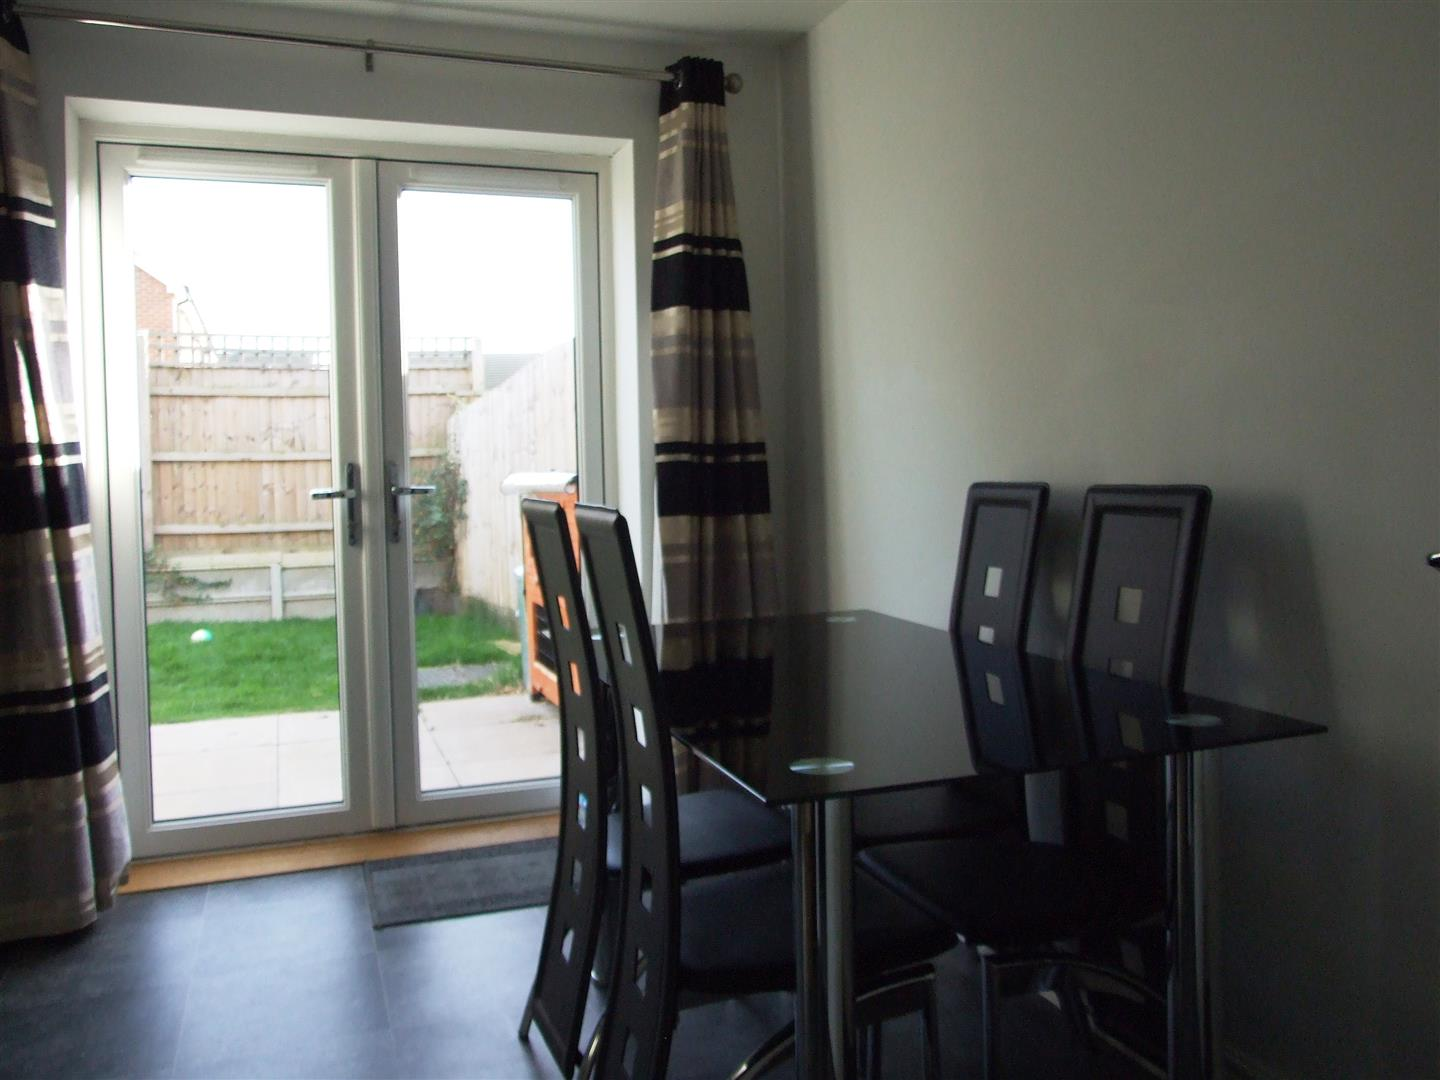 3 bed house to rent in Long Sutton, PE12 9GZ 5